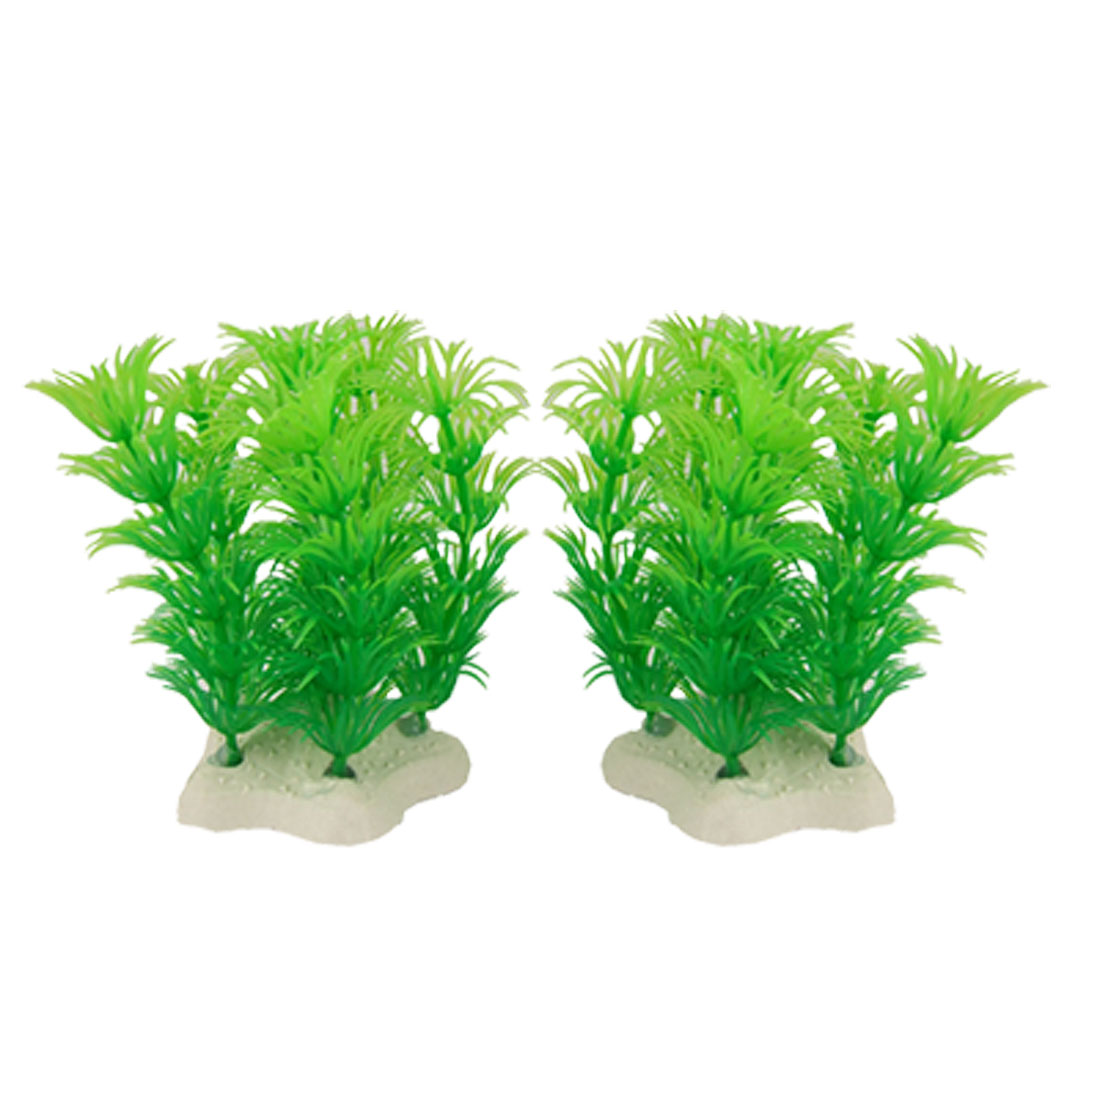 2 Pcs Artifical Green Plastic Plants Decoration for Fish Tank Aquarium